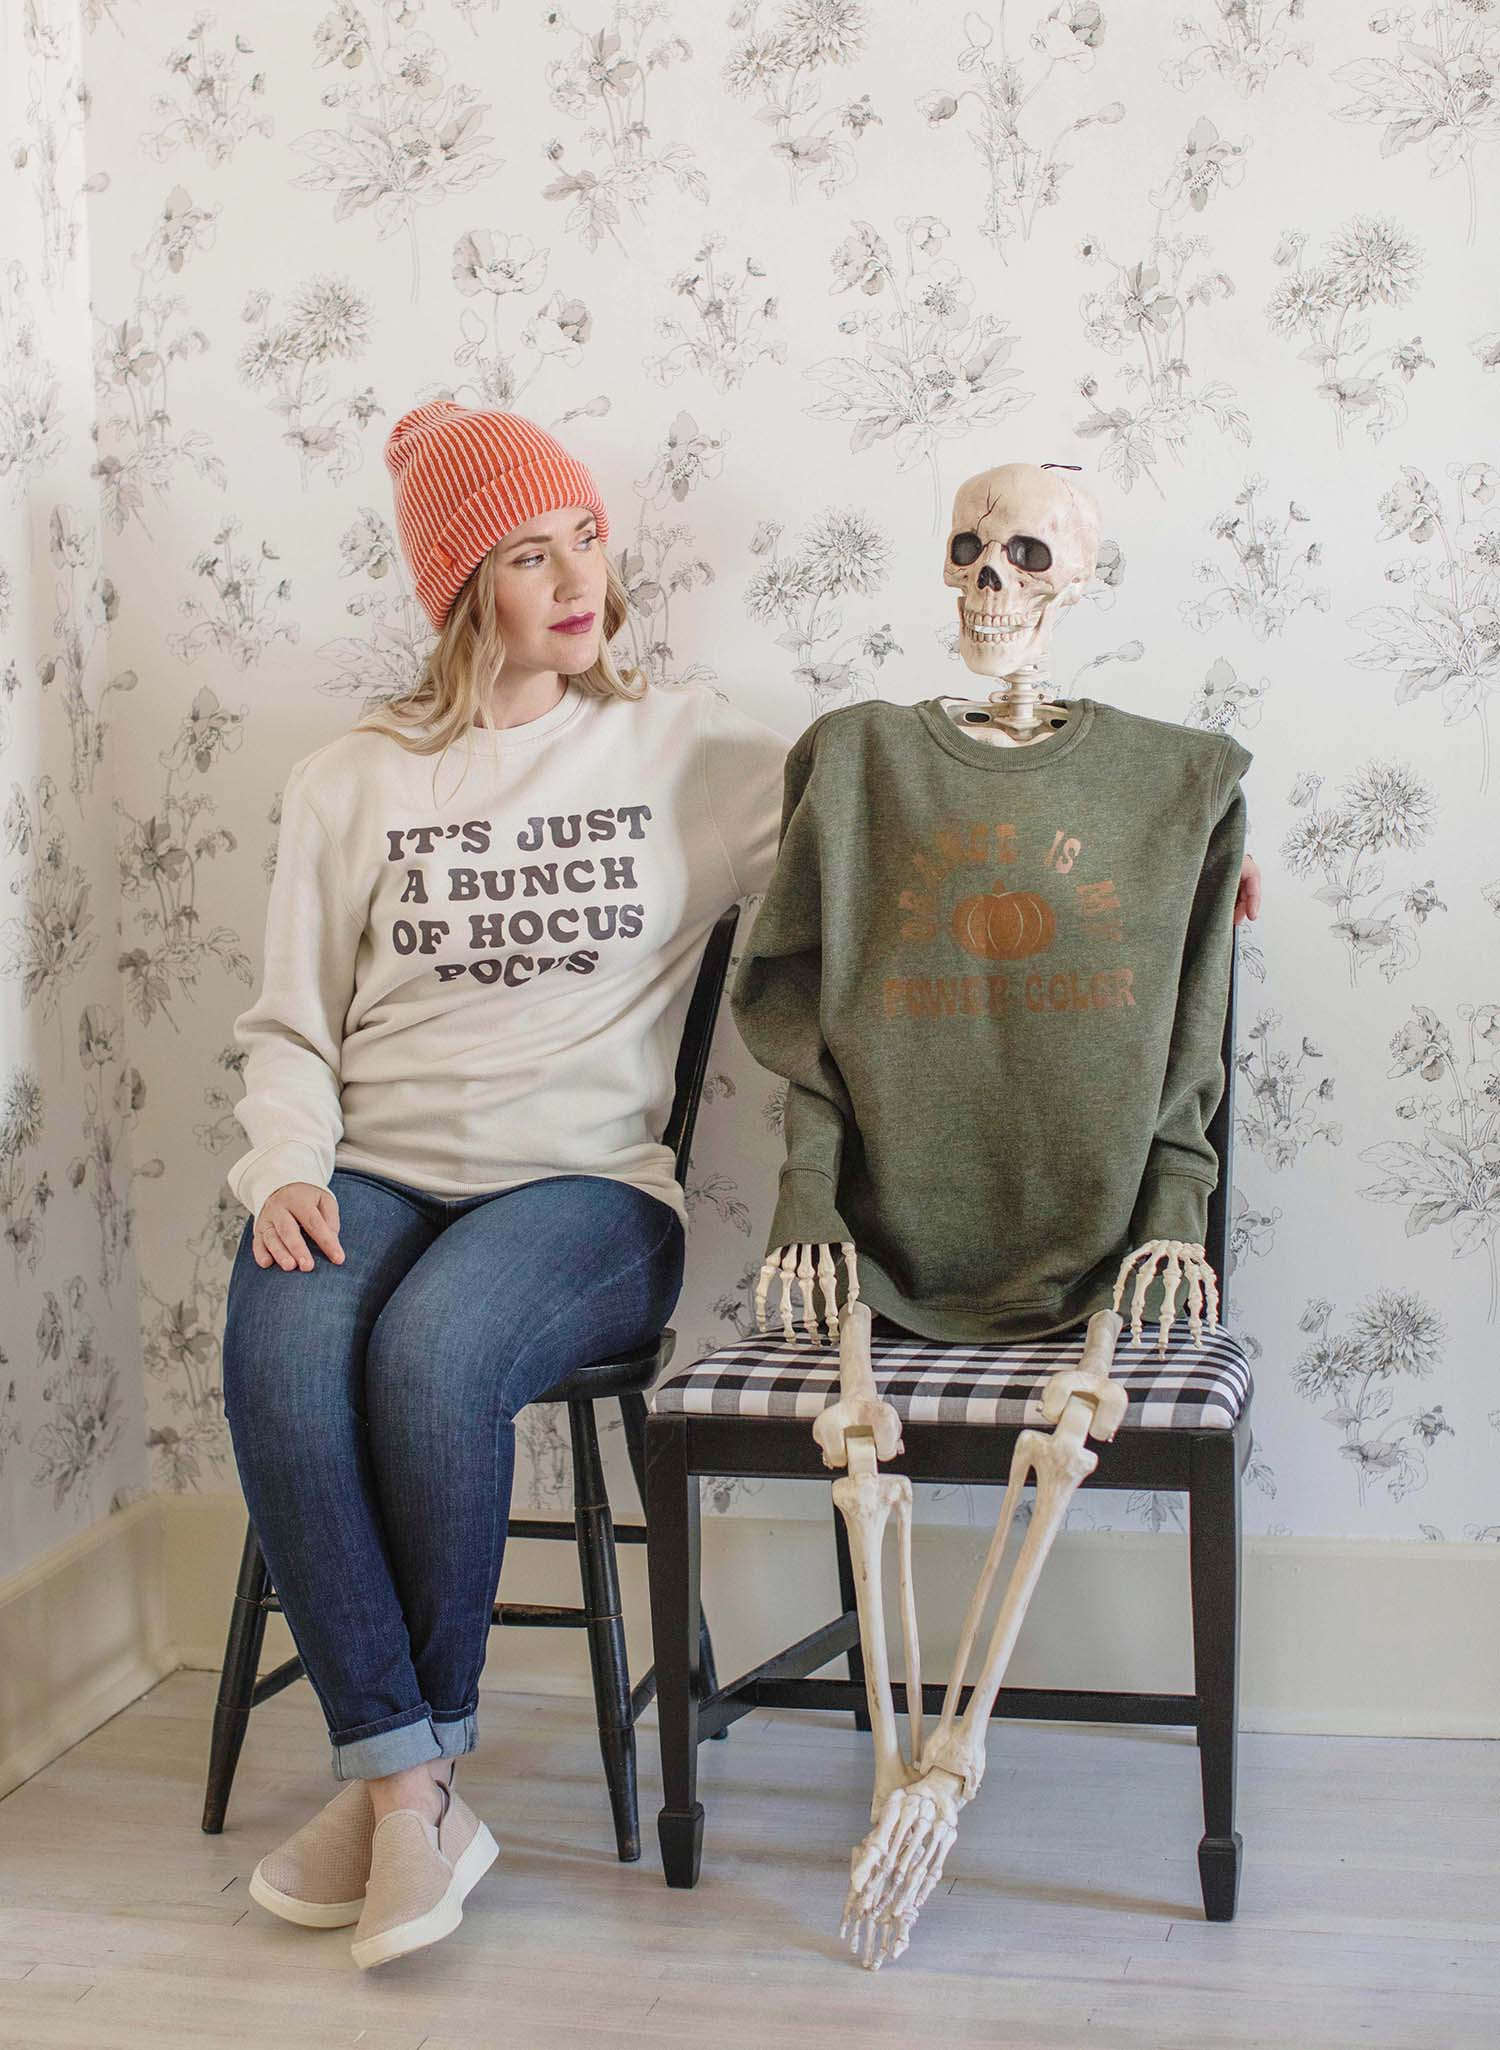 Make Your Own Halloween Sweater